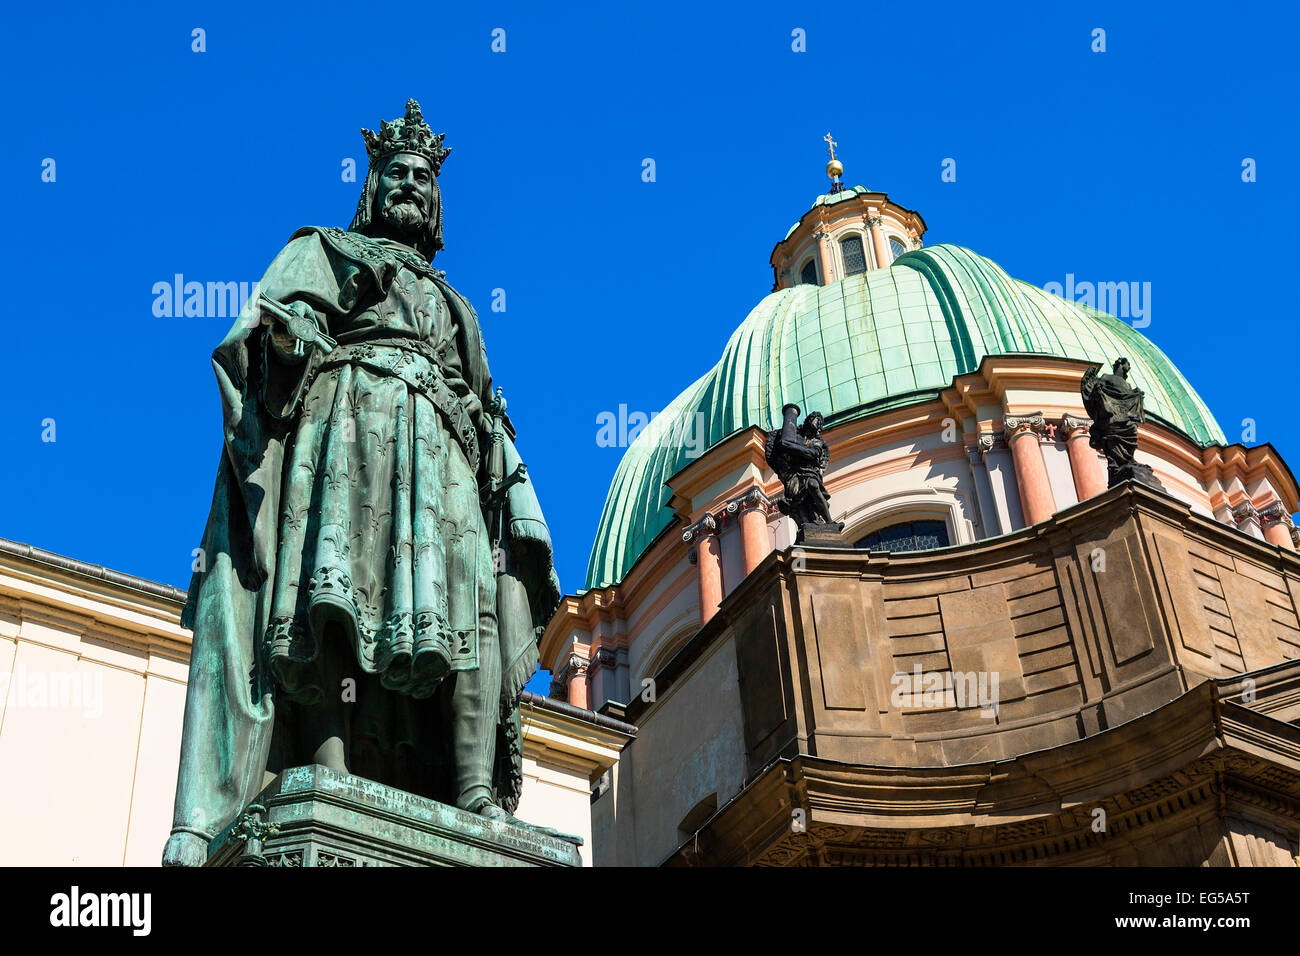 Statue Charles IV in Knights of the Cross Square, Prague - Stock Image